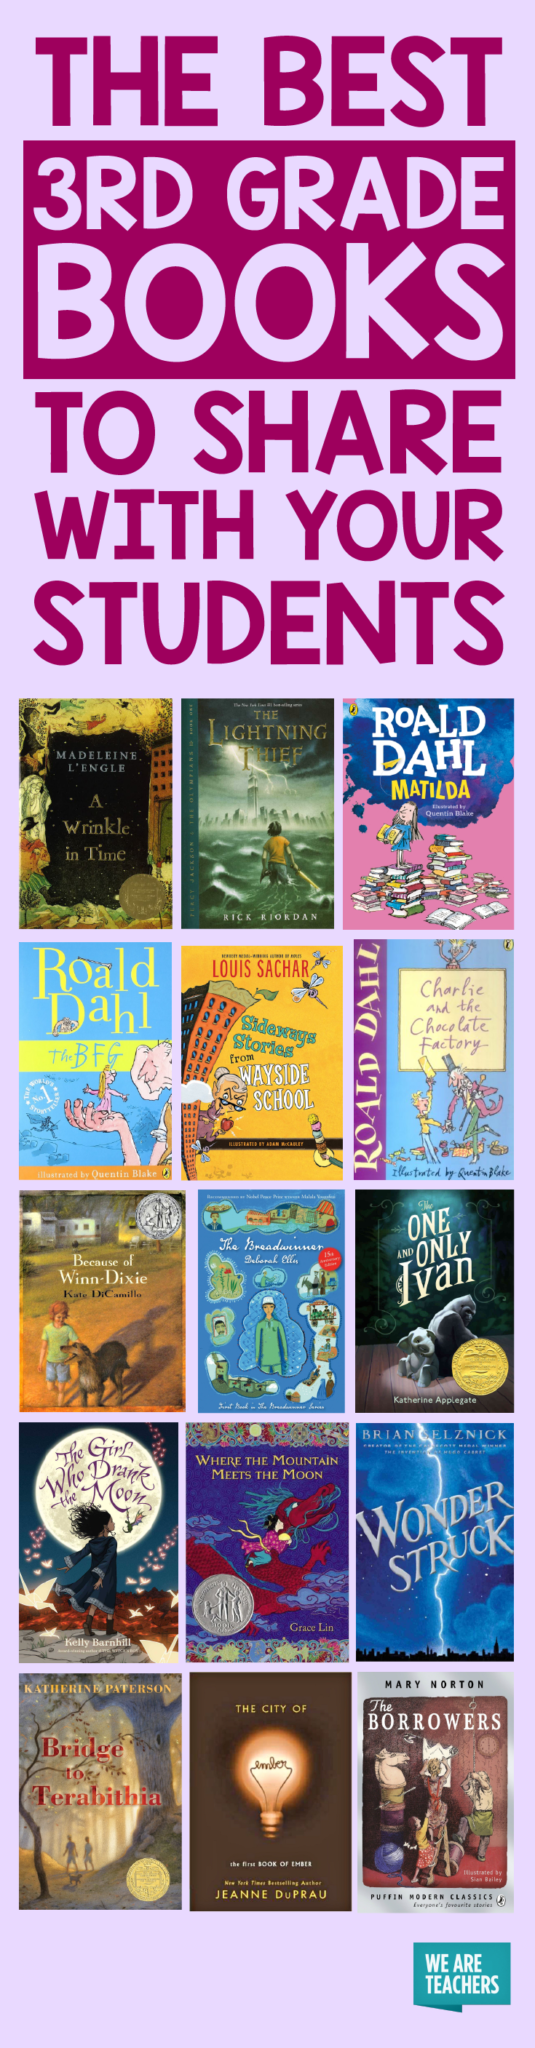 Best 3rd Grade Books As Chosen By Teachers Weareteachers